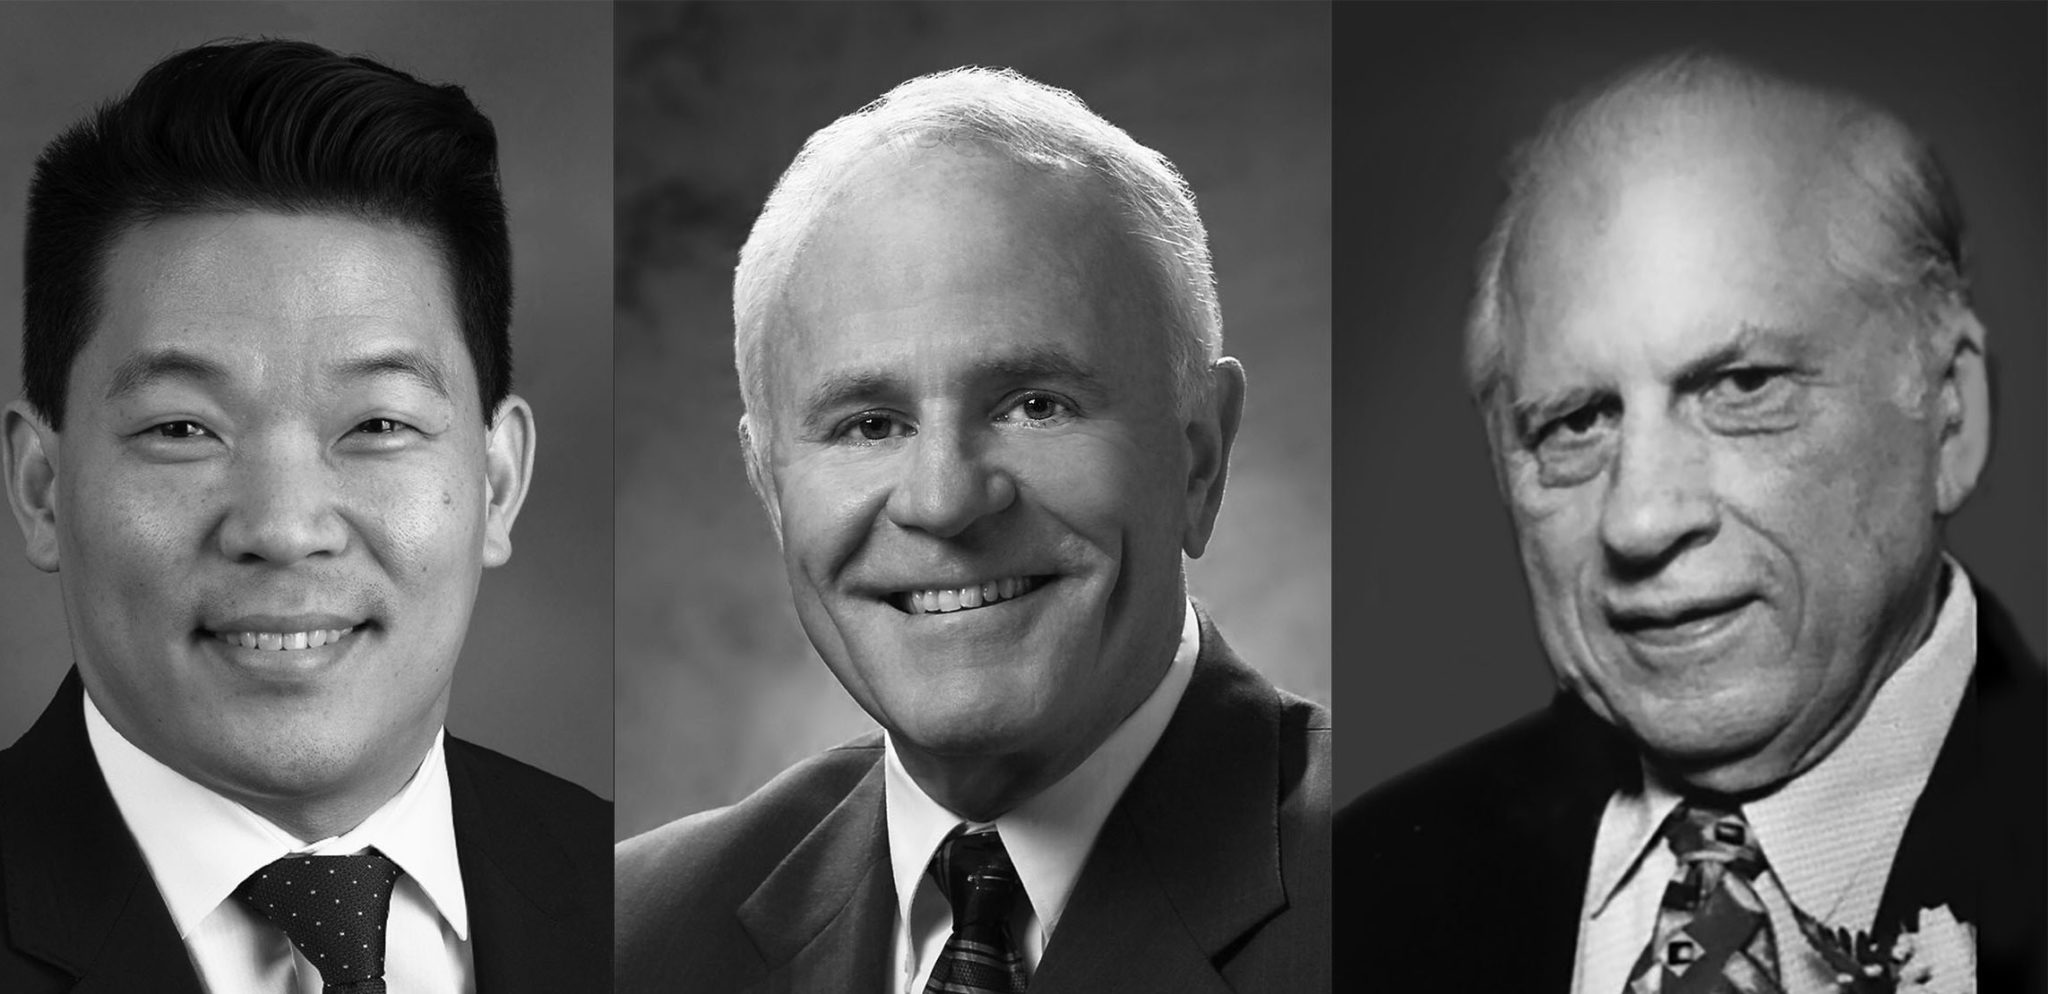 Trio to be Inducted into Olympia High School Alumni Hall of